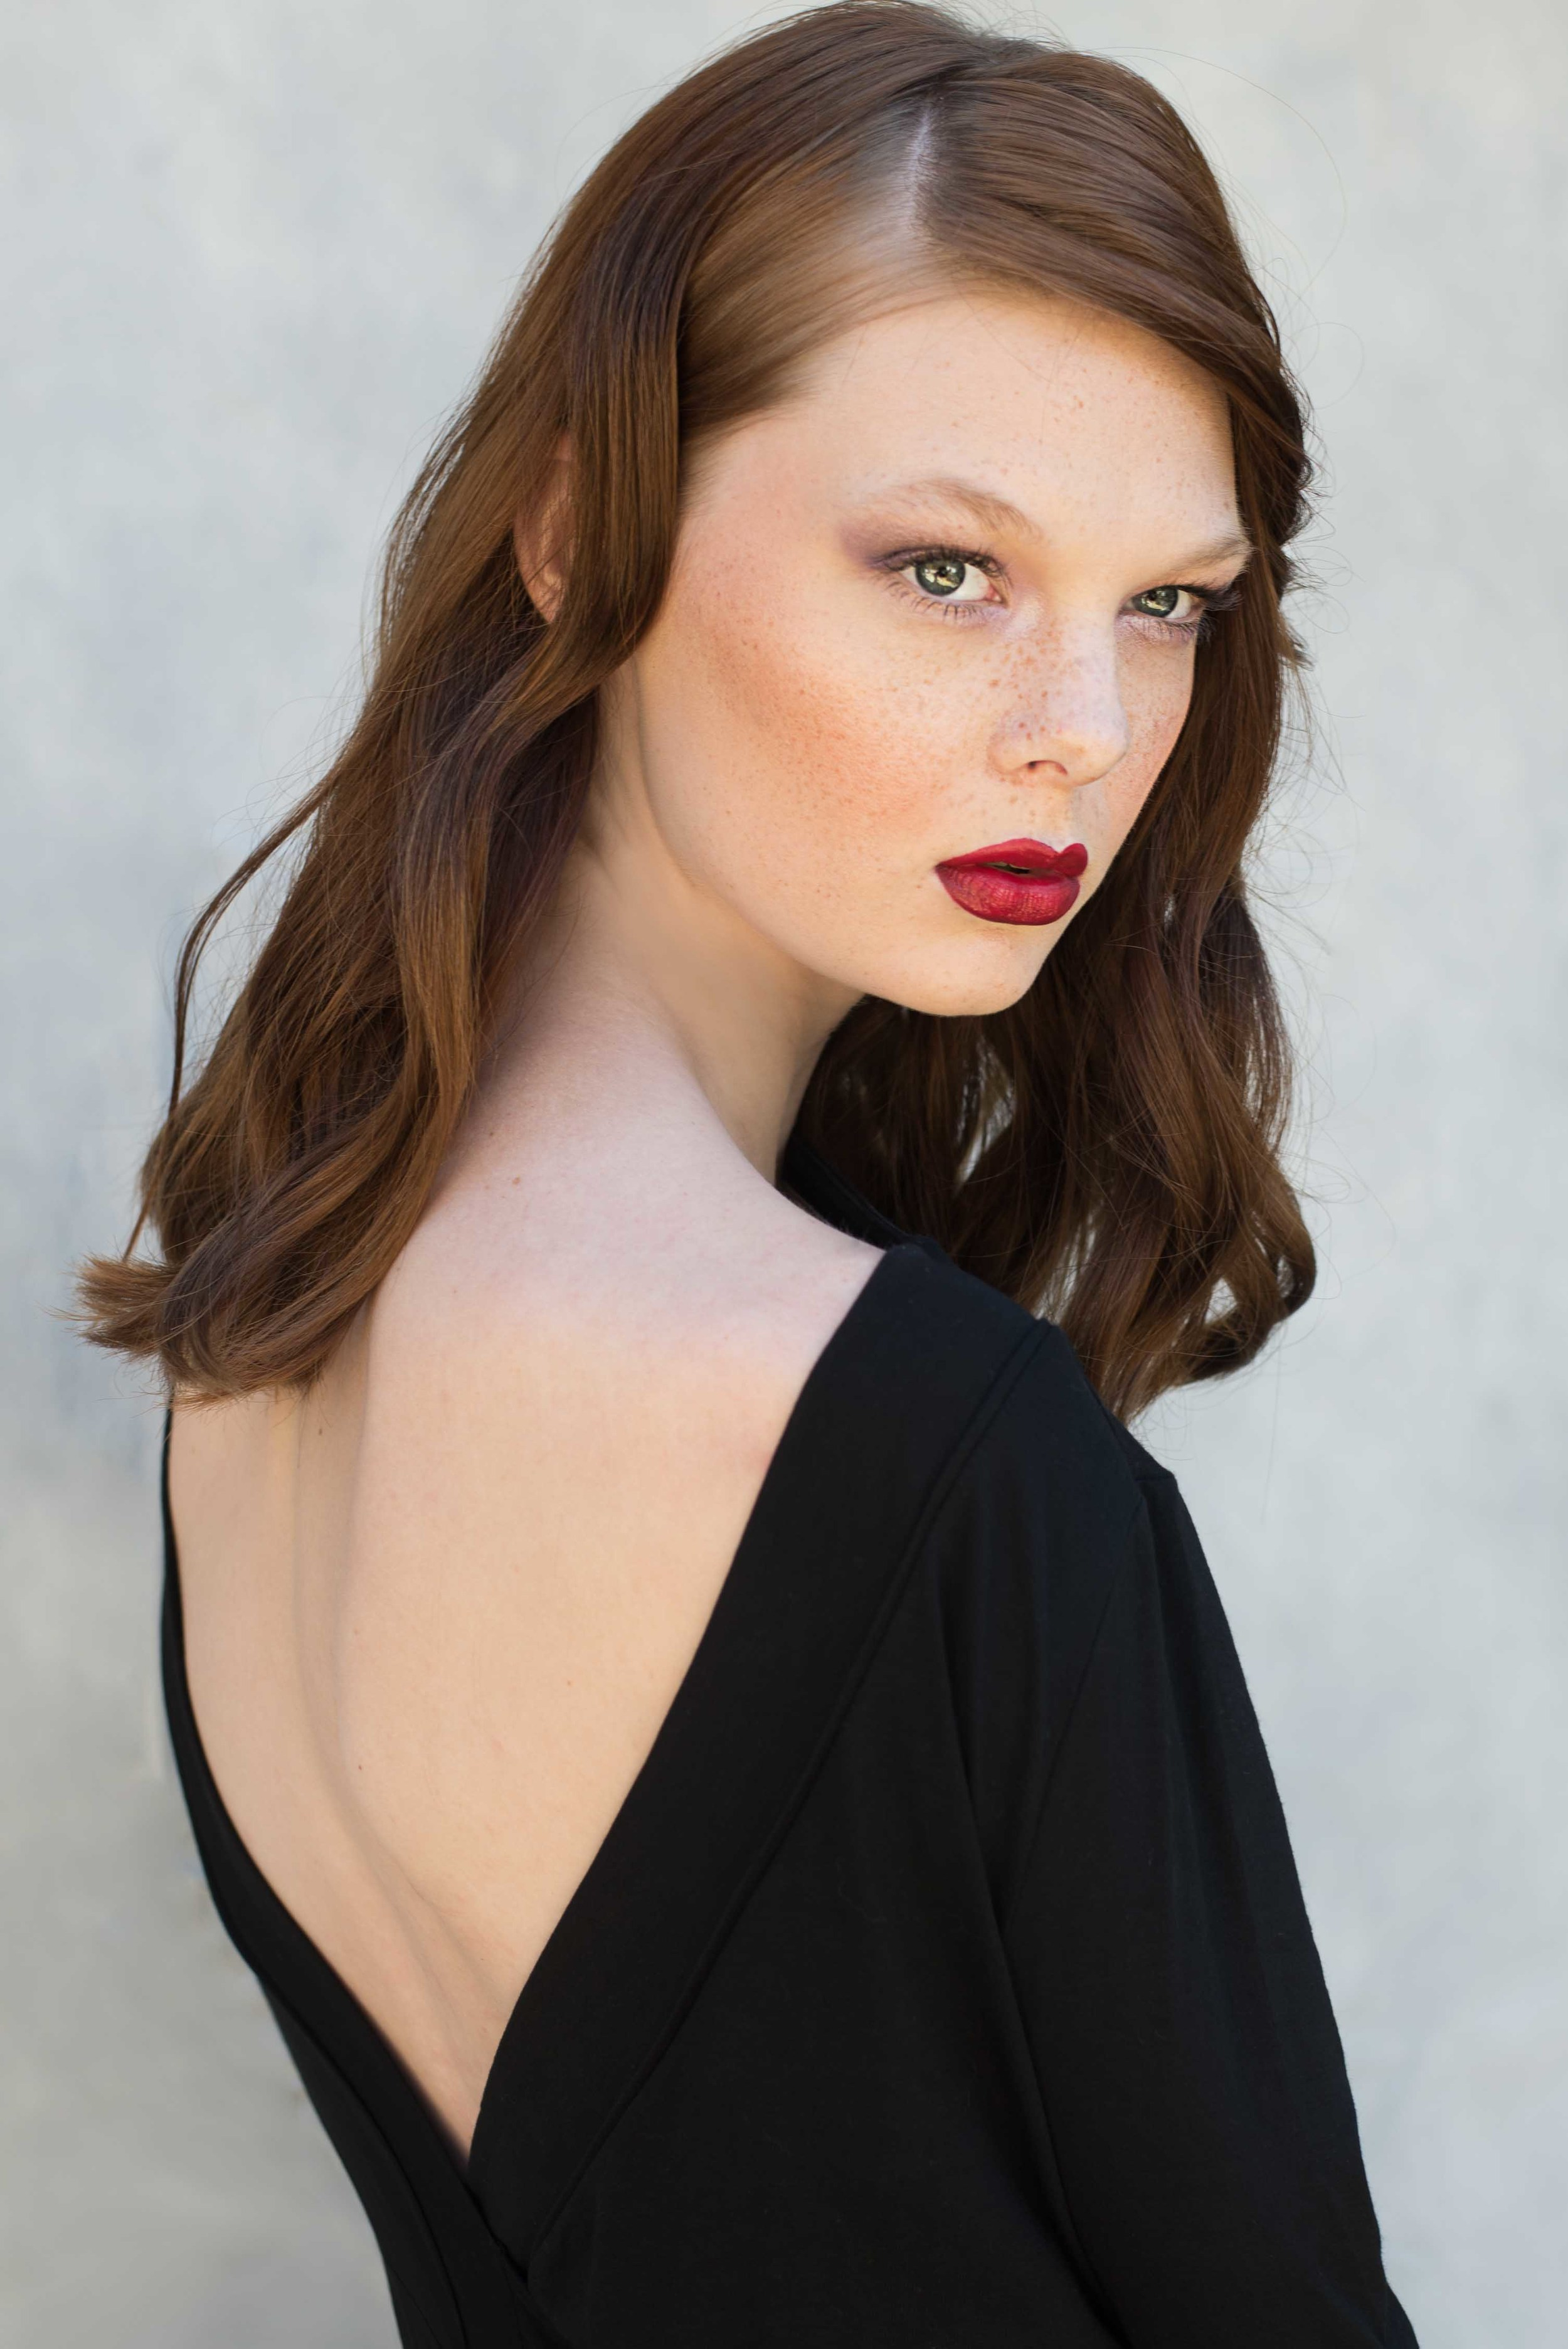 Beauty and Cosmetic Photographer Los Angeles